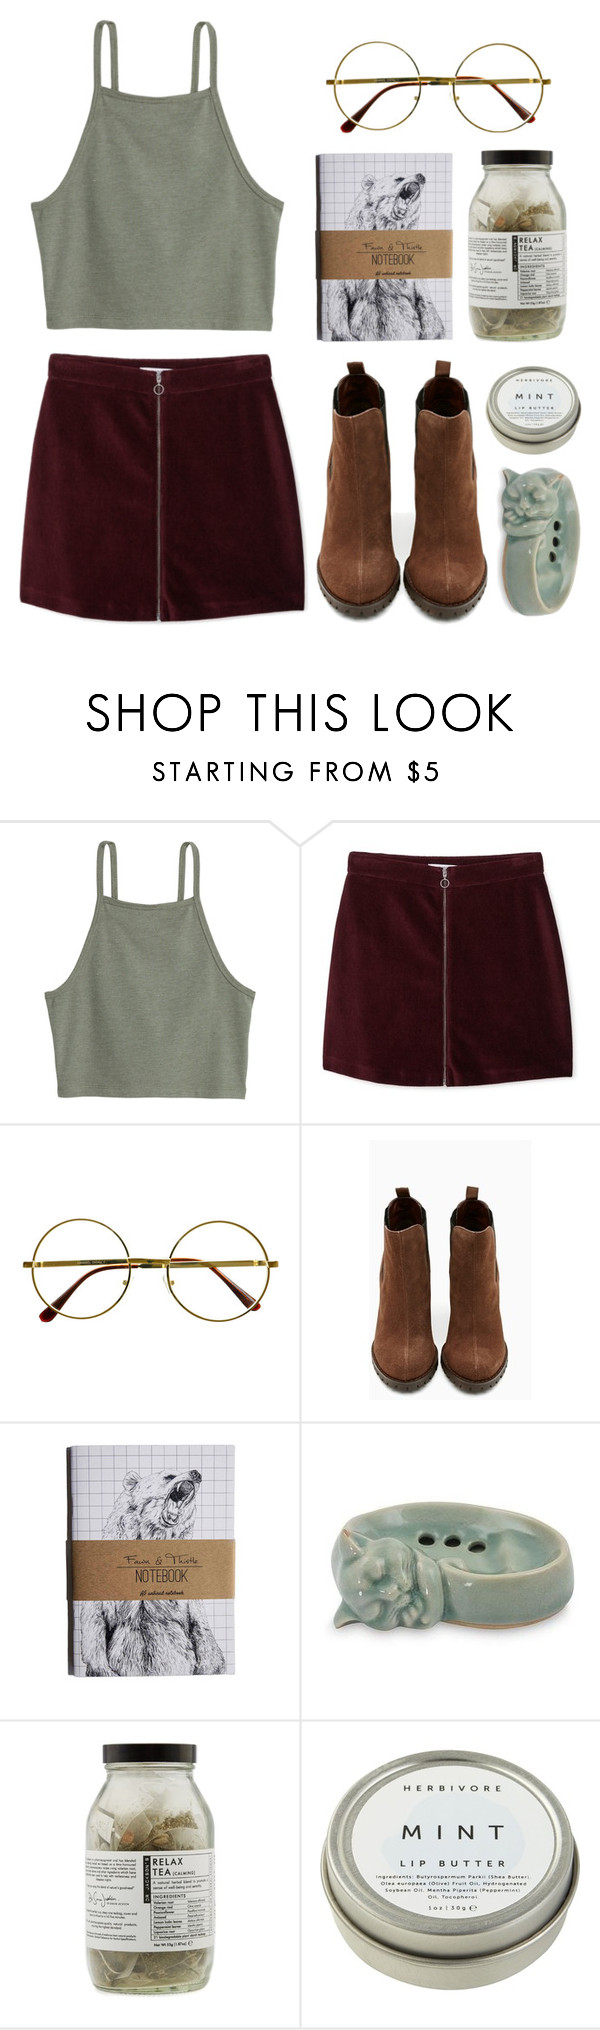 """Liute"" by soym ❤ liked on Polyvore featuring MANGO, Retrò, Shoe Cult, NOVICA, Dr. Jackson's and CB2"